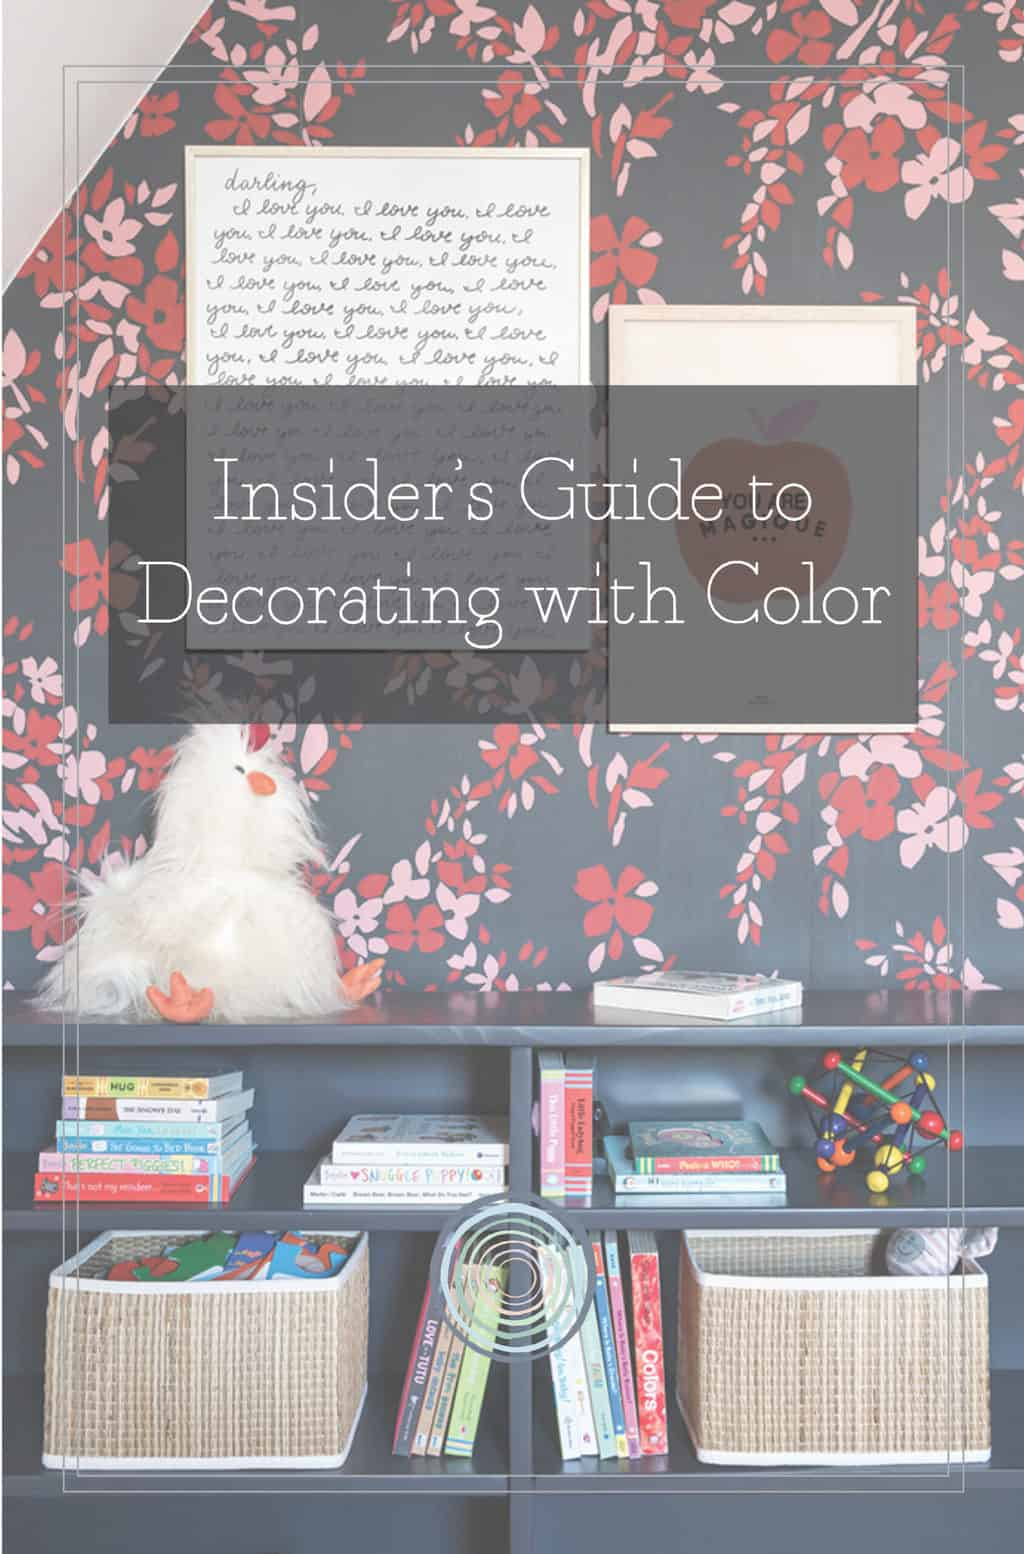 Insider's Guide to Decorating with Color PDF